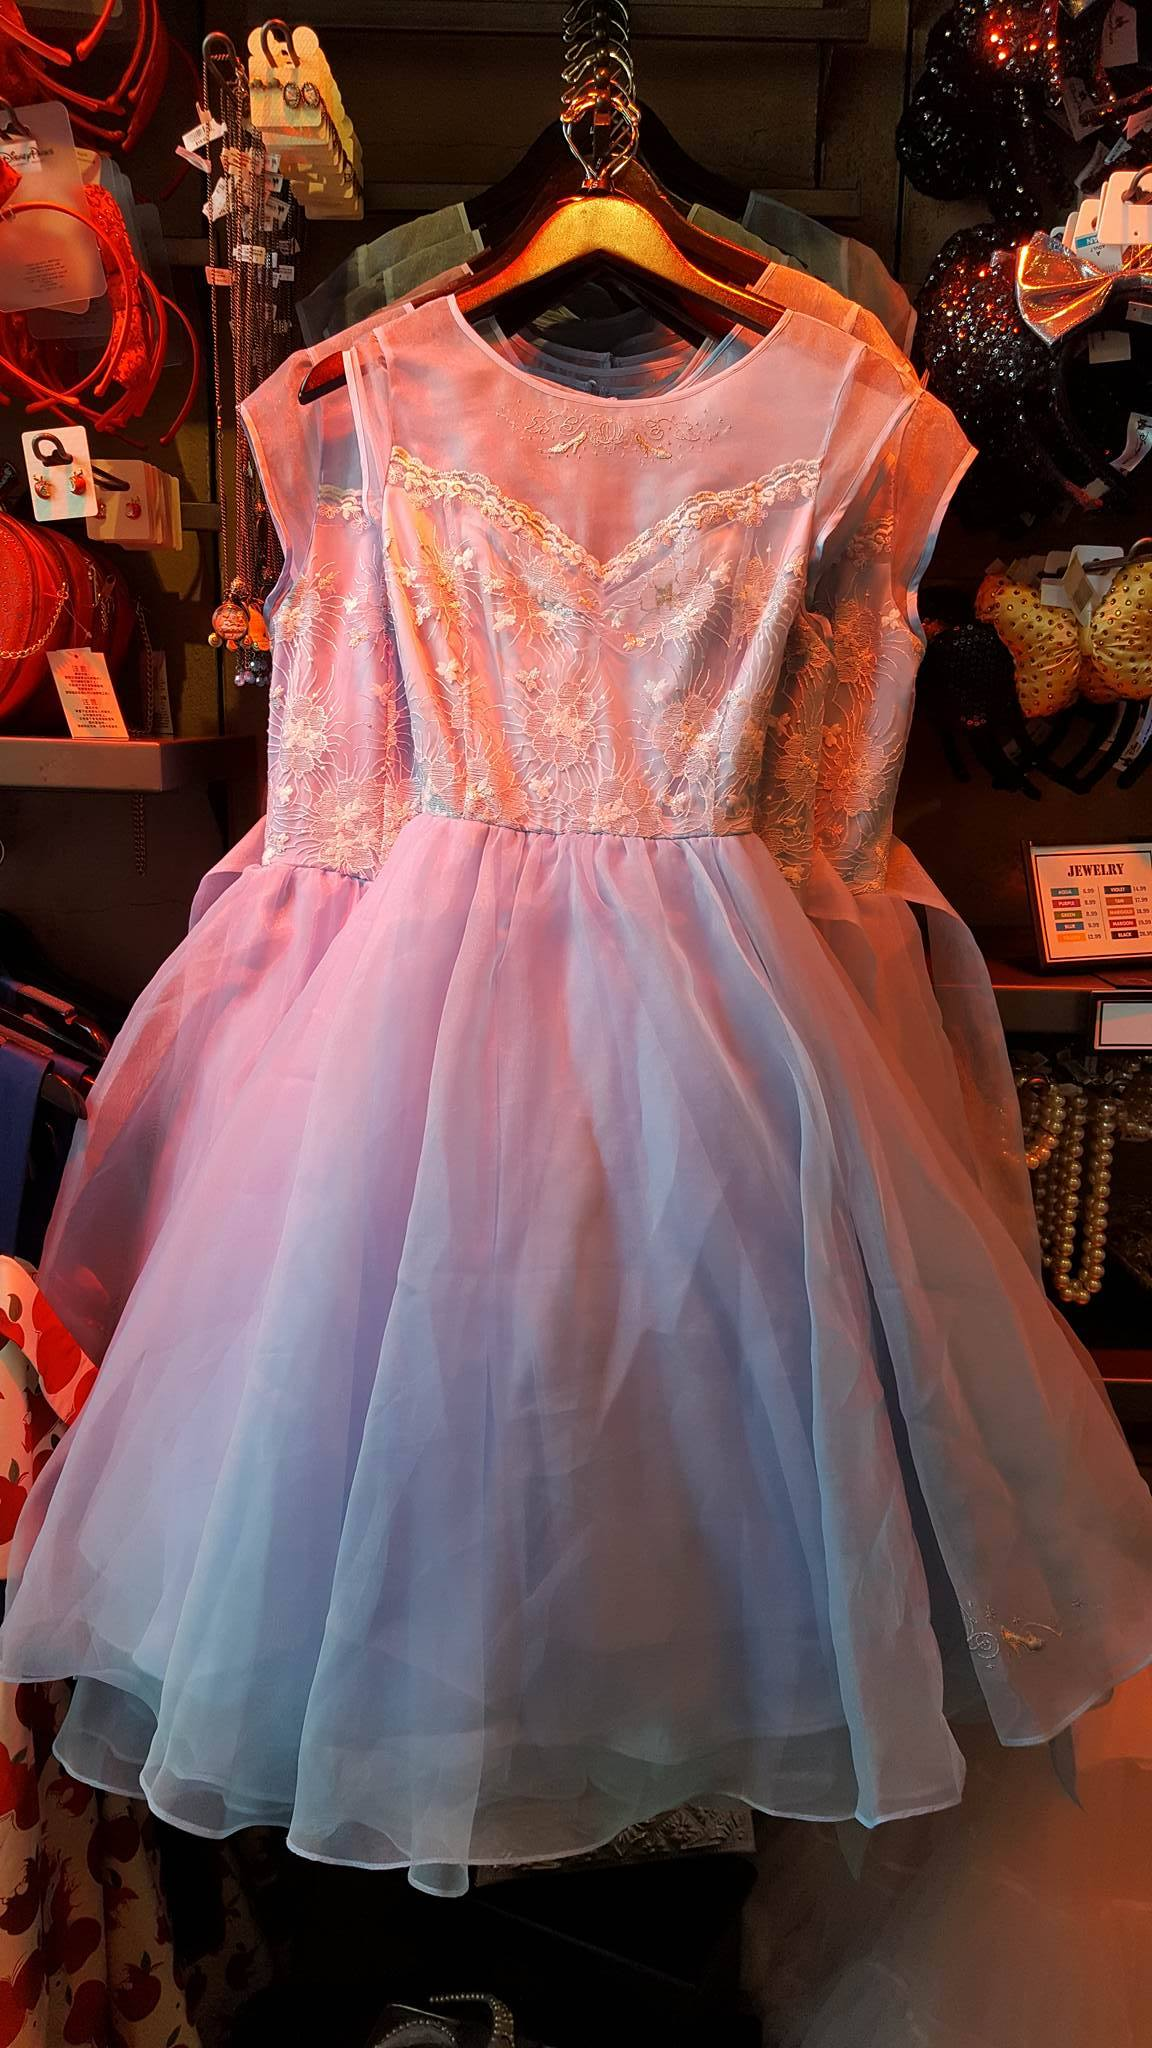 Dresses Are Now Restocked at The Dress Shop in Disneyland ...